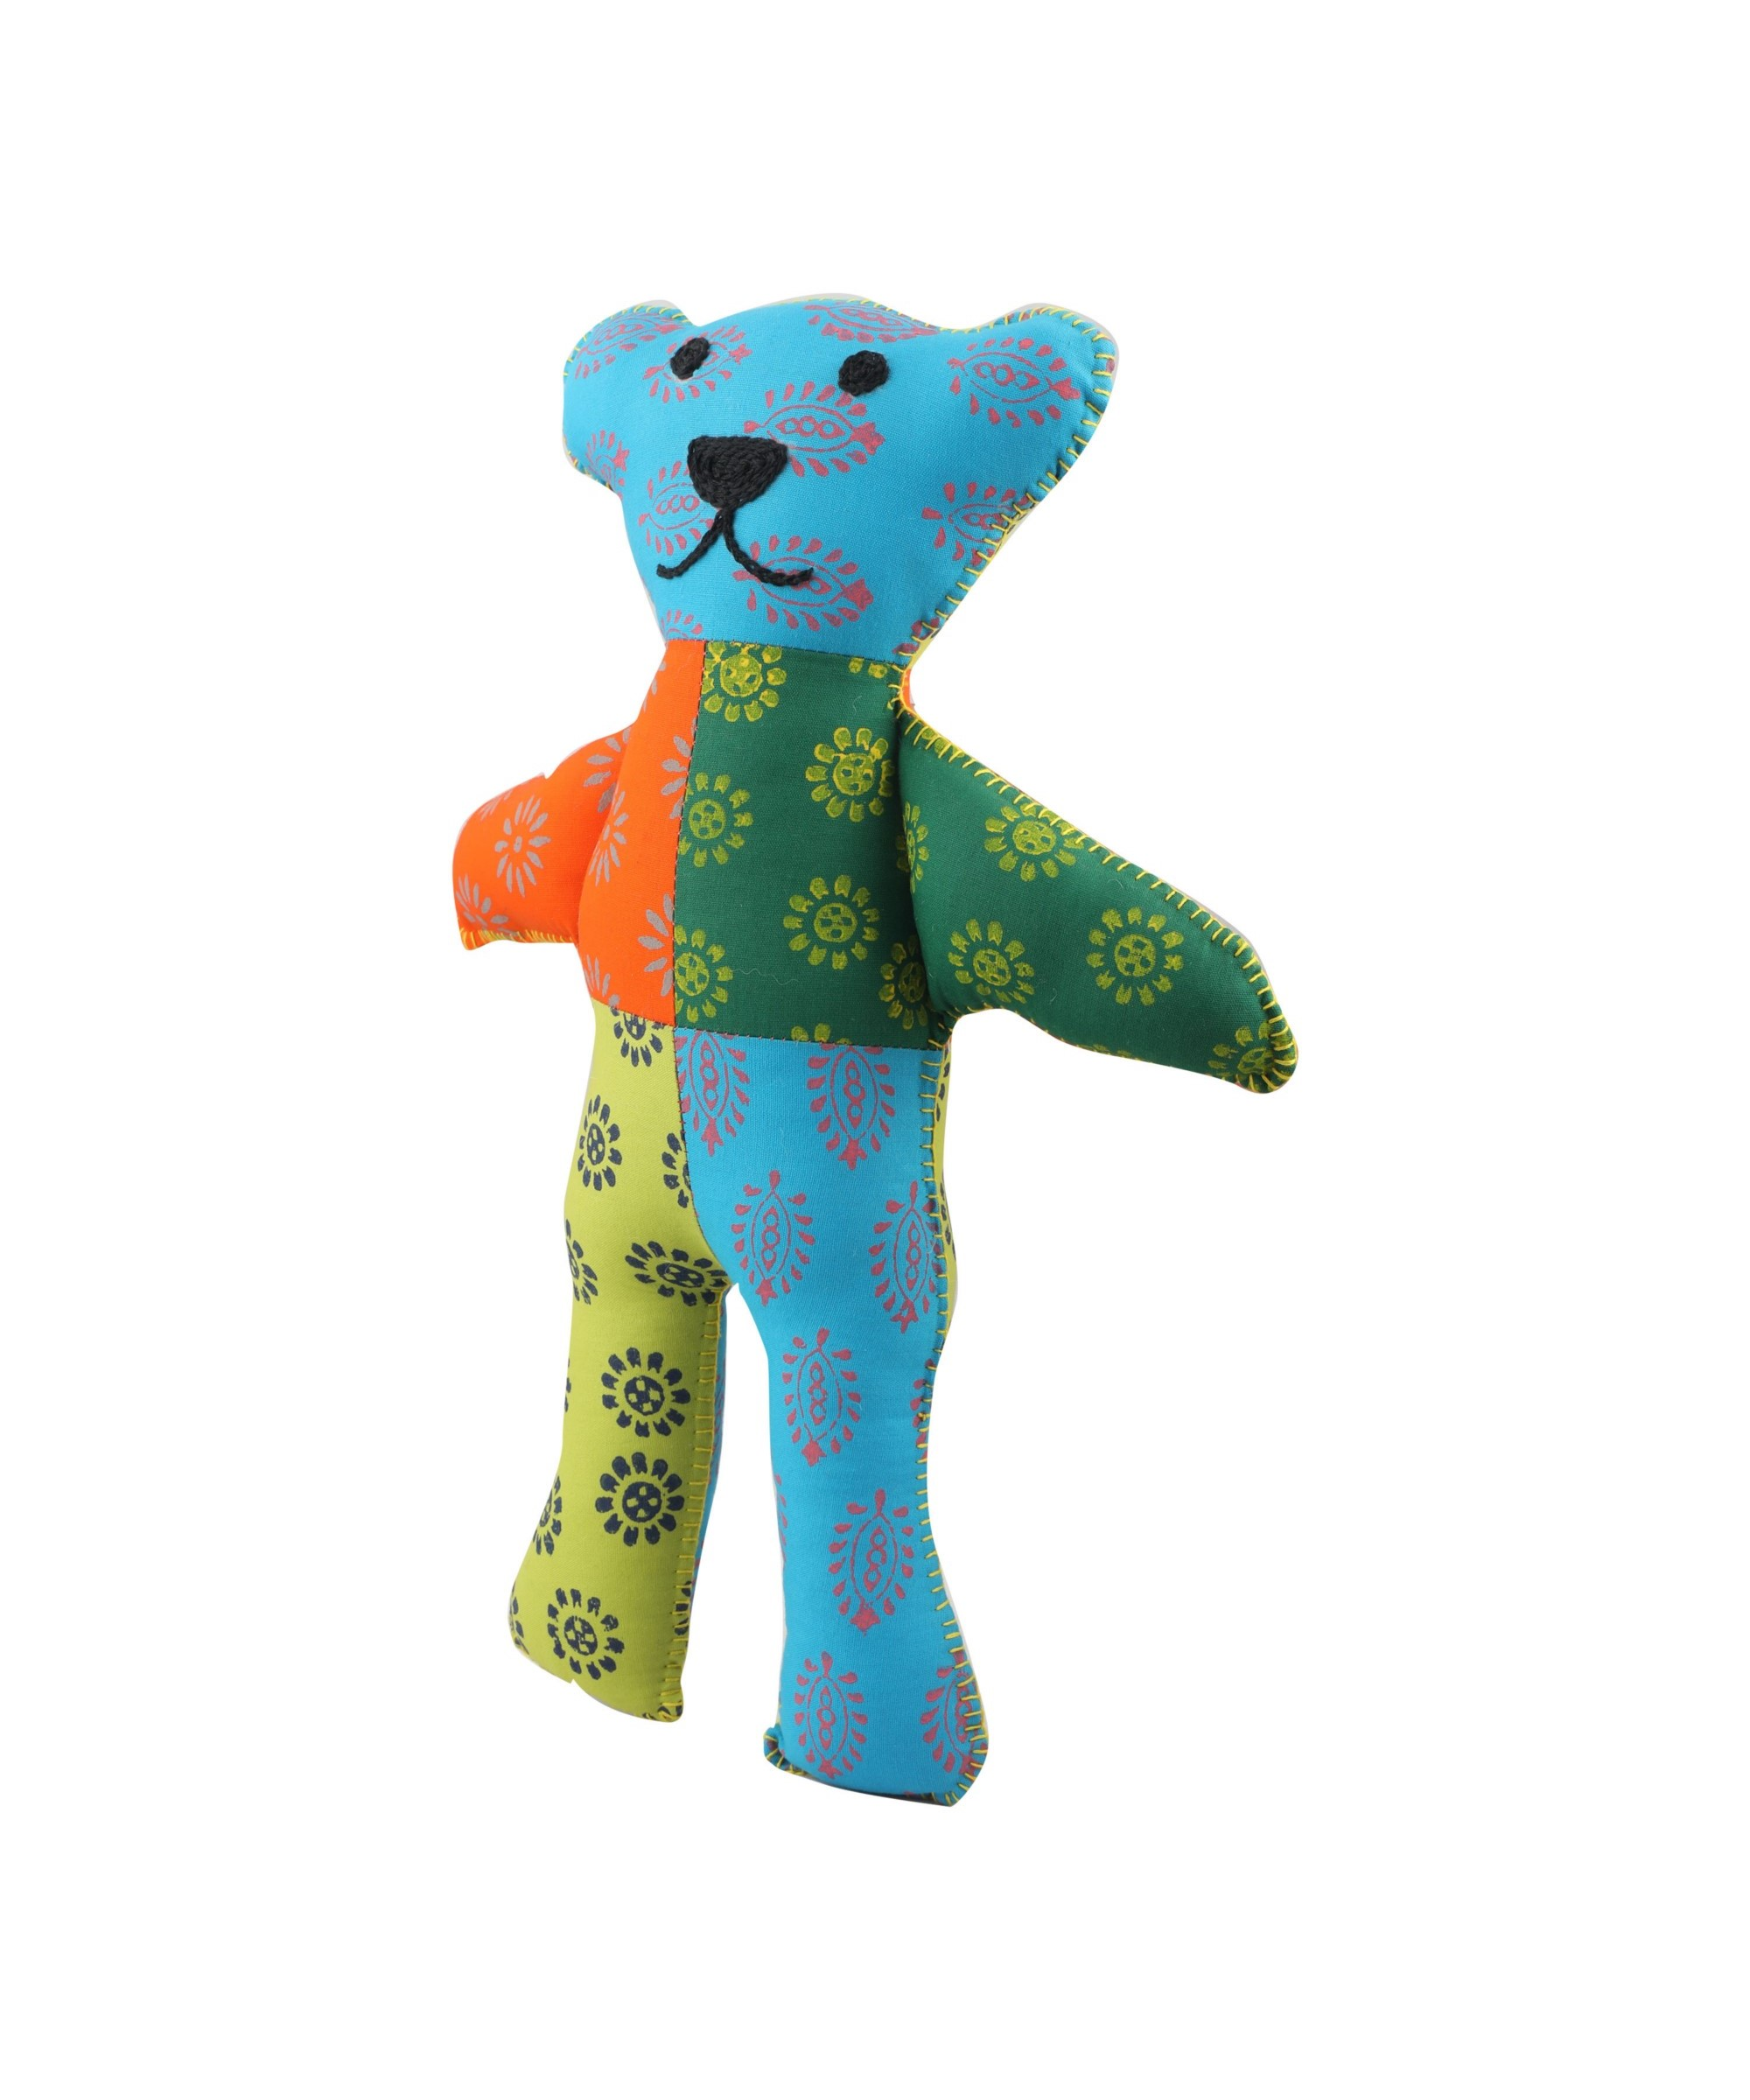 Patchwork Block Printed Soft Toy - Teddy (Multicoloured) Slider Thumbnail 2/3